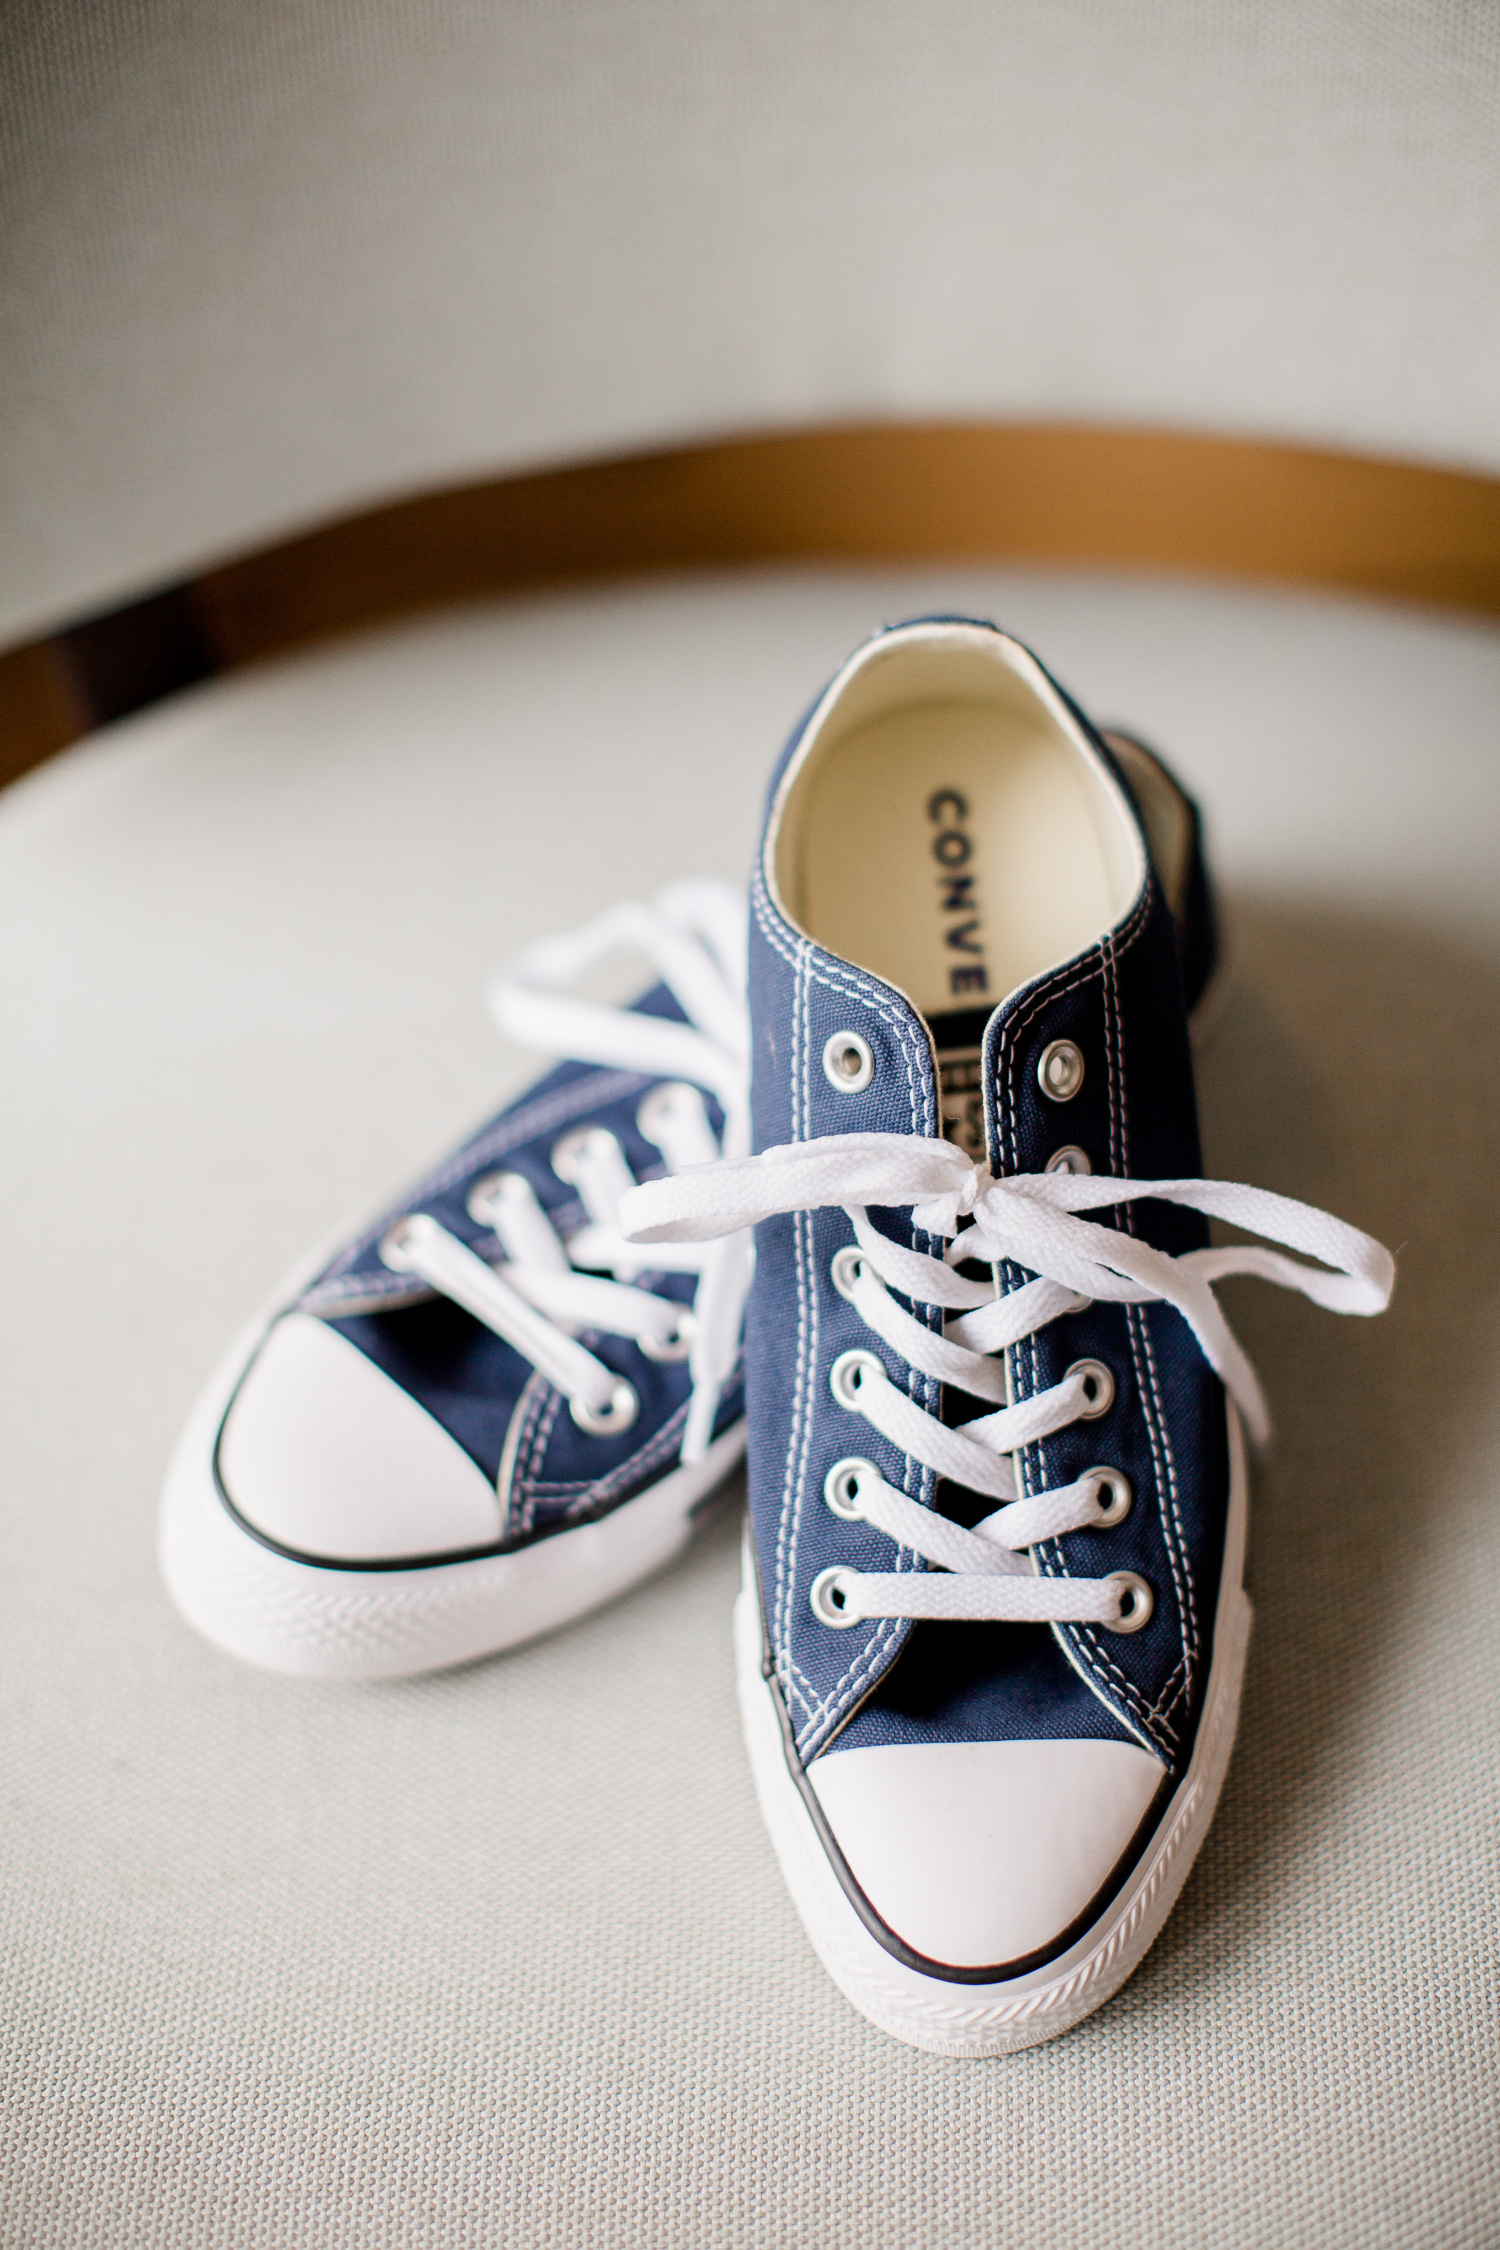 Downtown Knoxville Wedding Venue // Central Avenue Reception // Converse Wedding Shoes